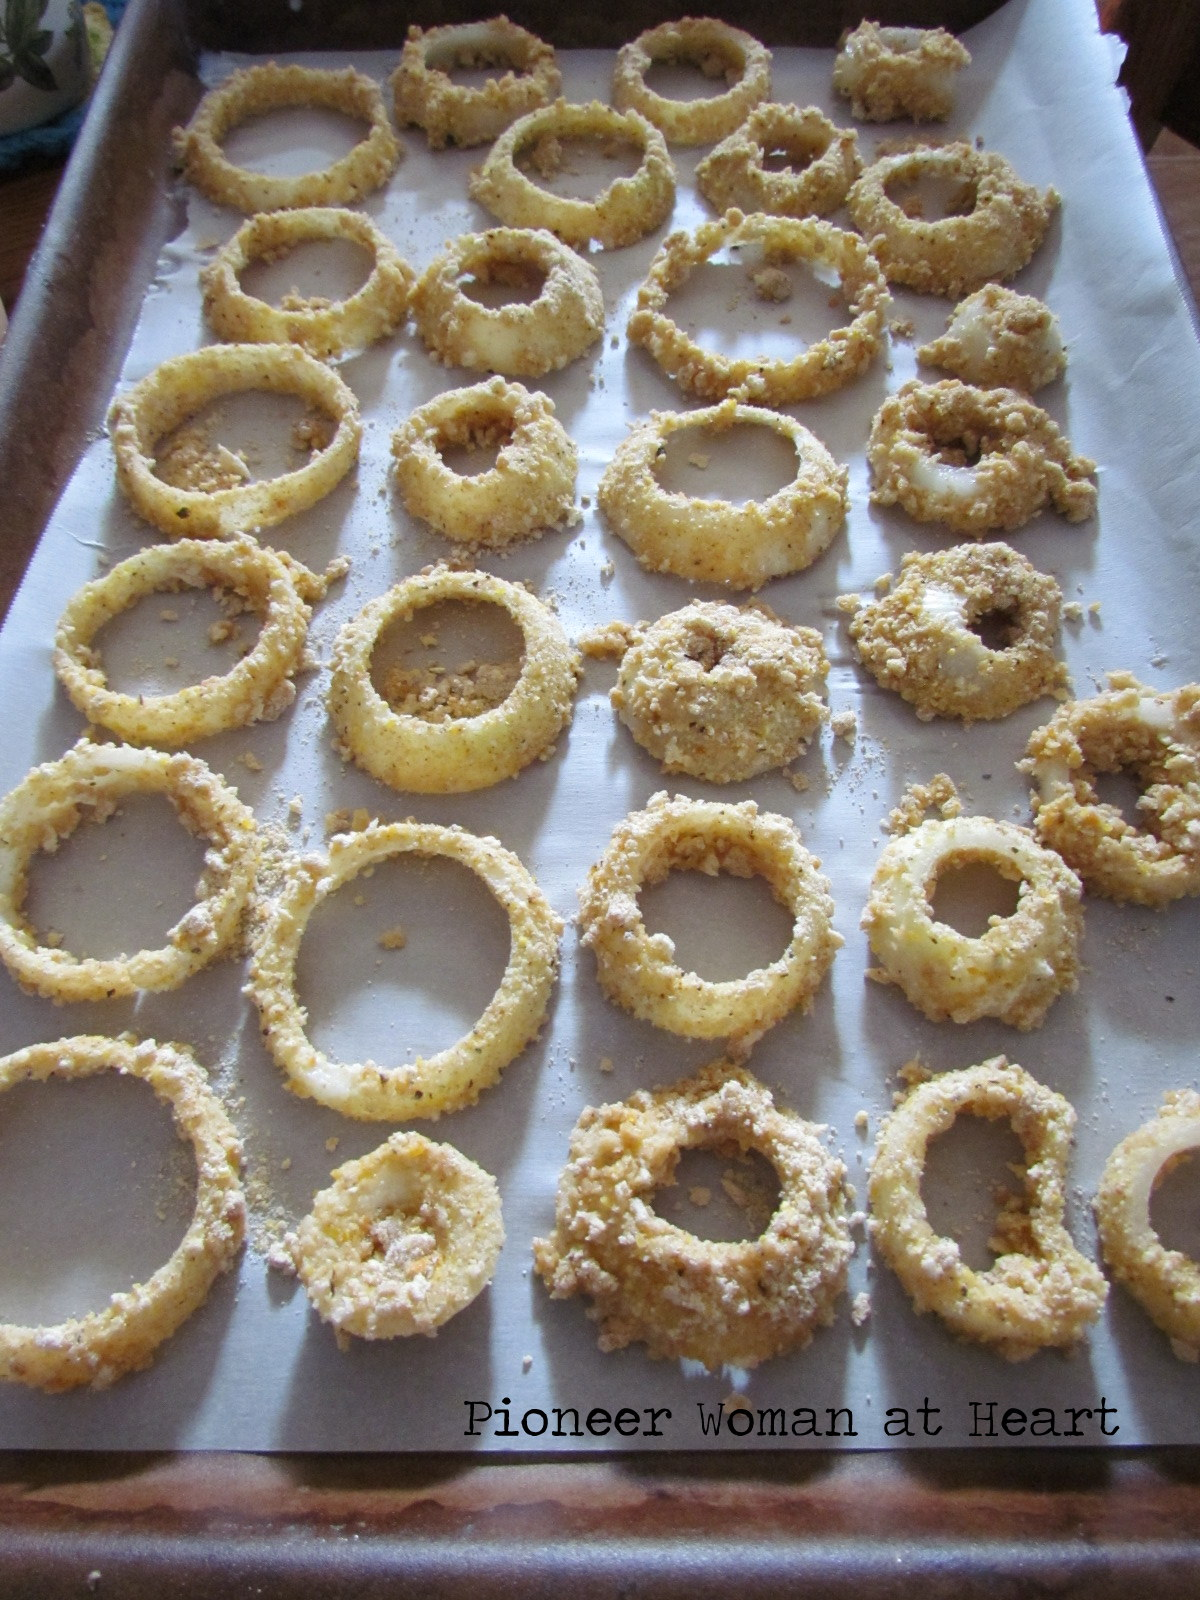 Pioneer Woman At Heart Baked Onion Rings Freezing Onion Soup Onion Powder Freezing